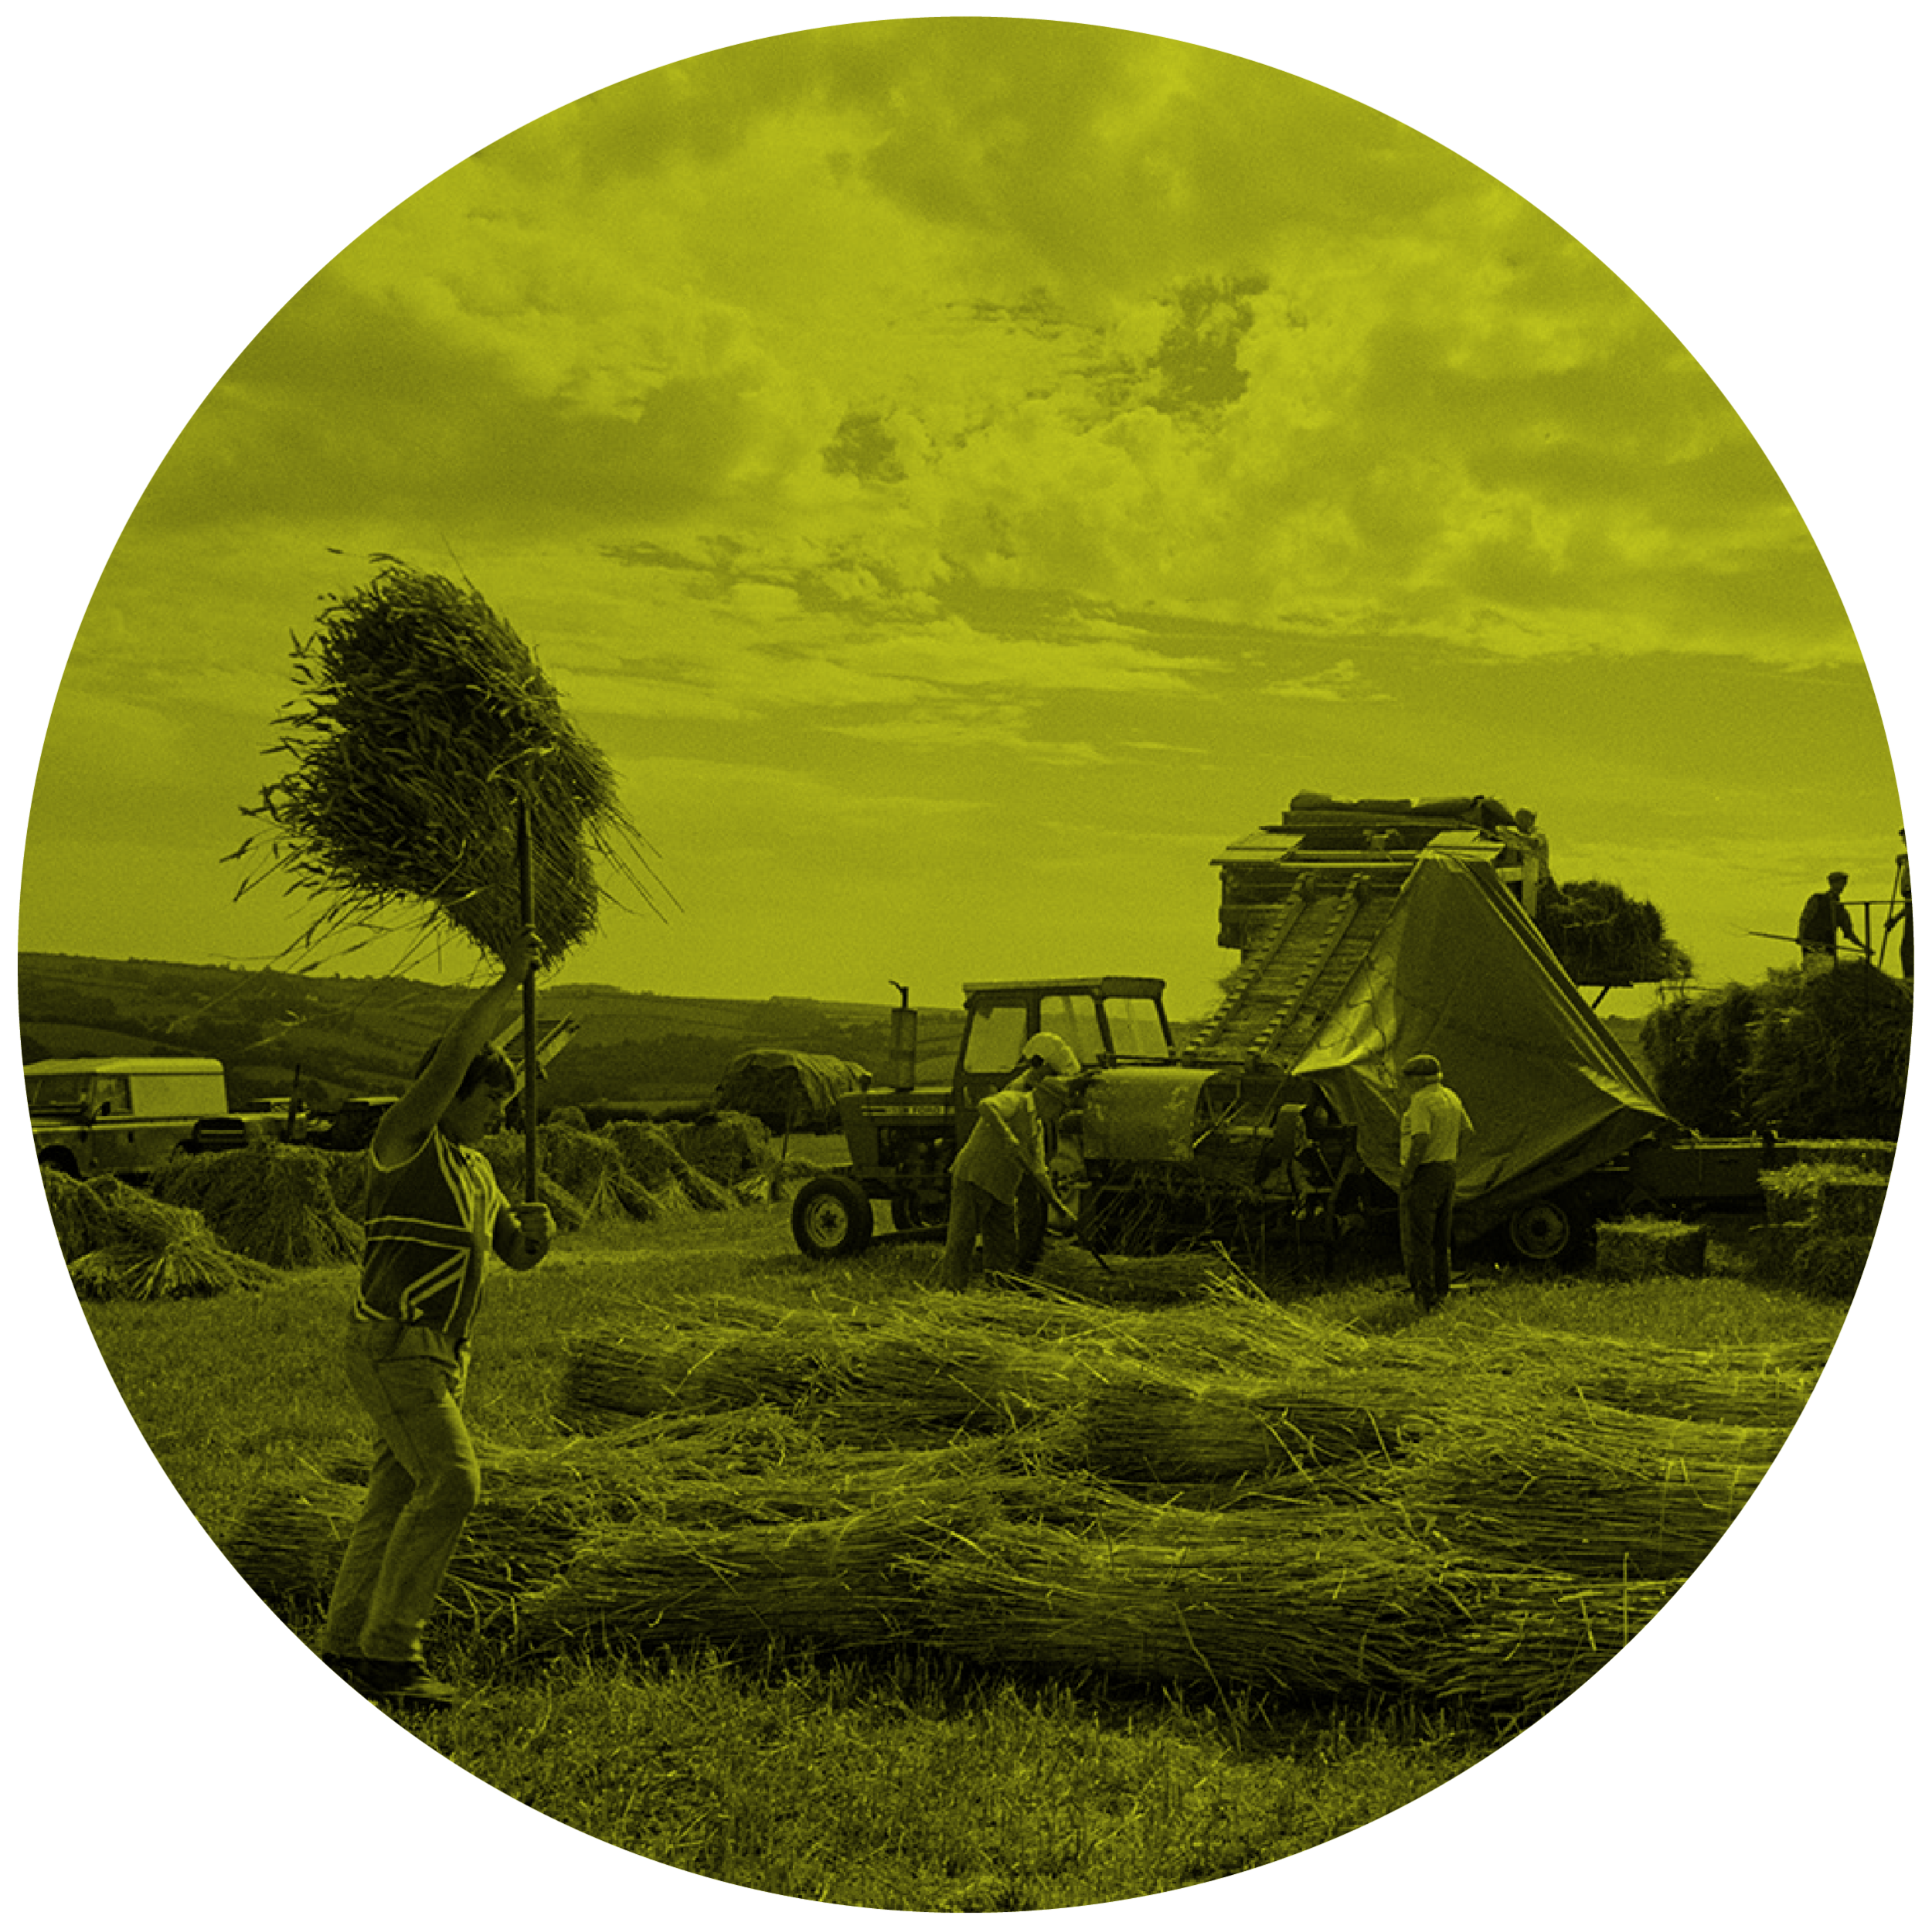 00_Beaford_COUNTRYFILE-04.png